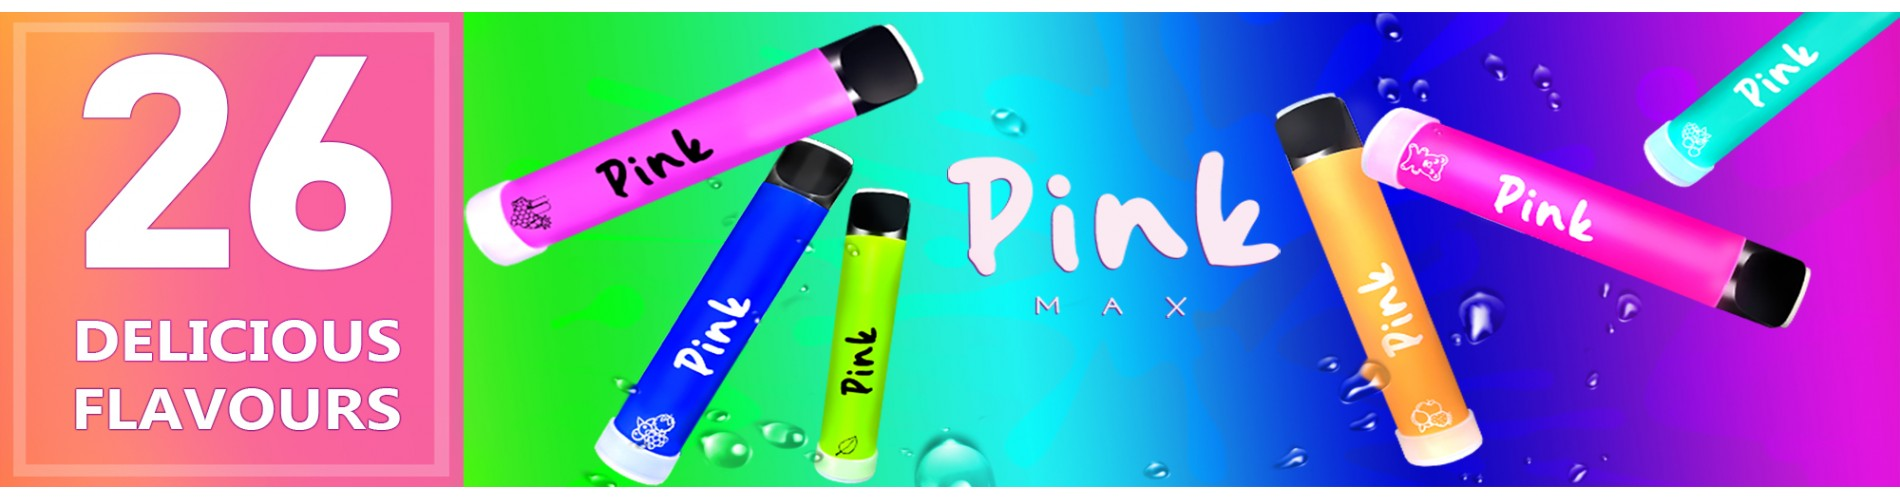 Pink Max - Disposables Manny Great Flavours